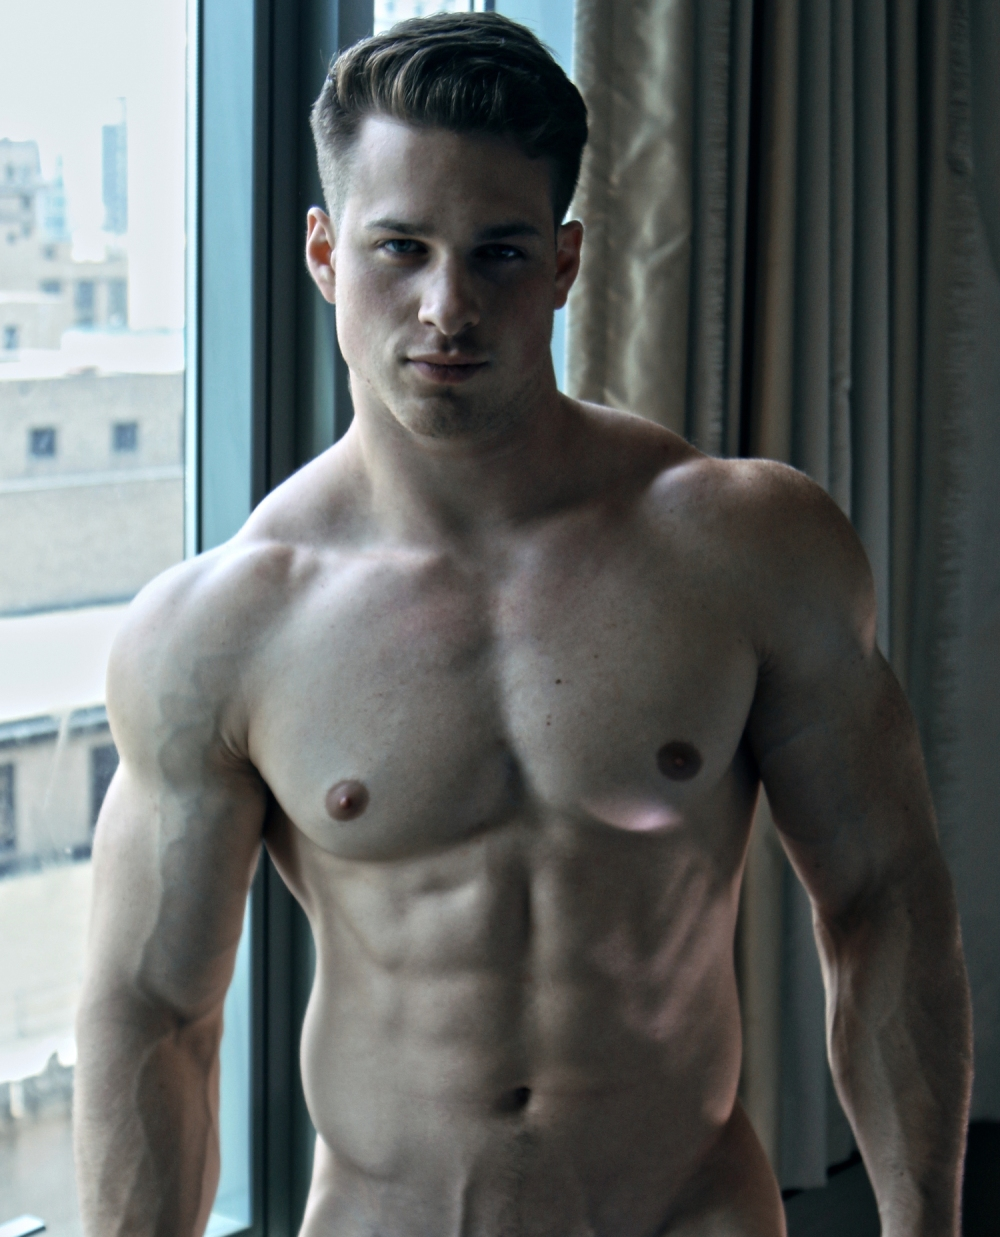 nick-sandell-for-adon-magazine-7